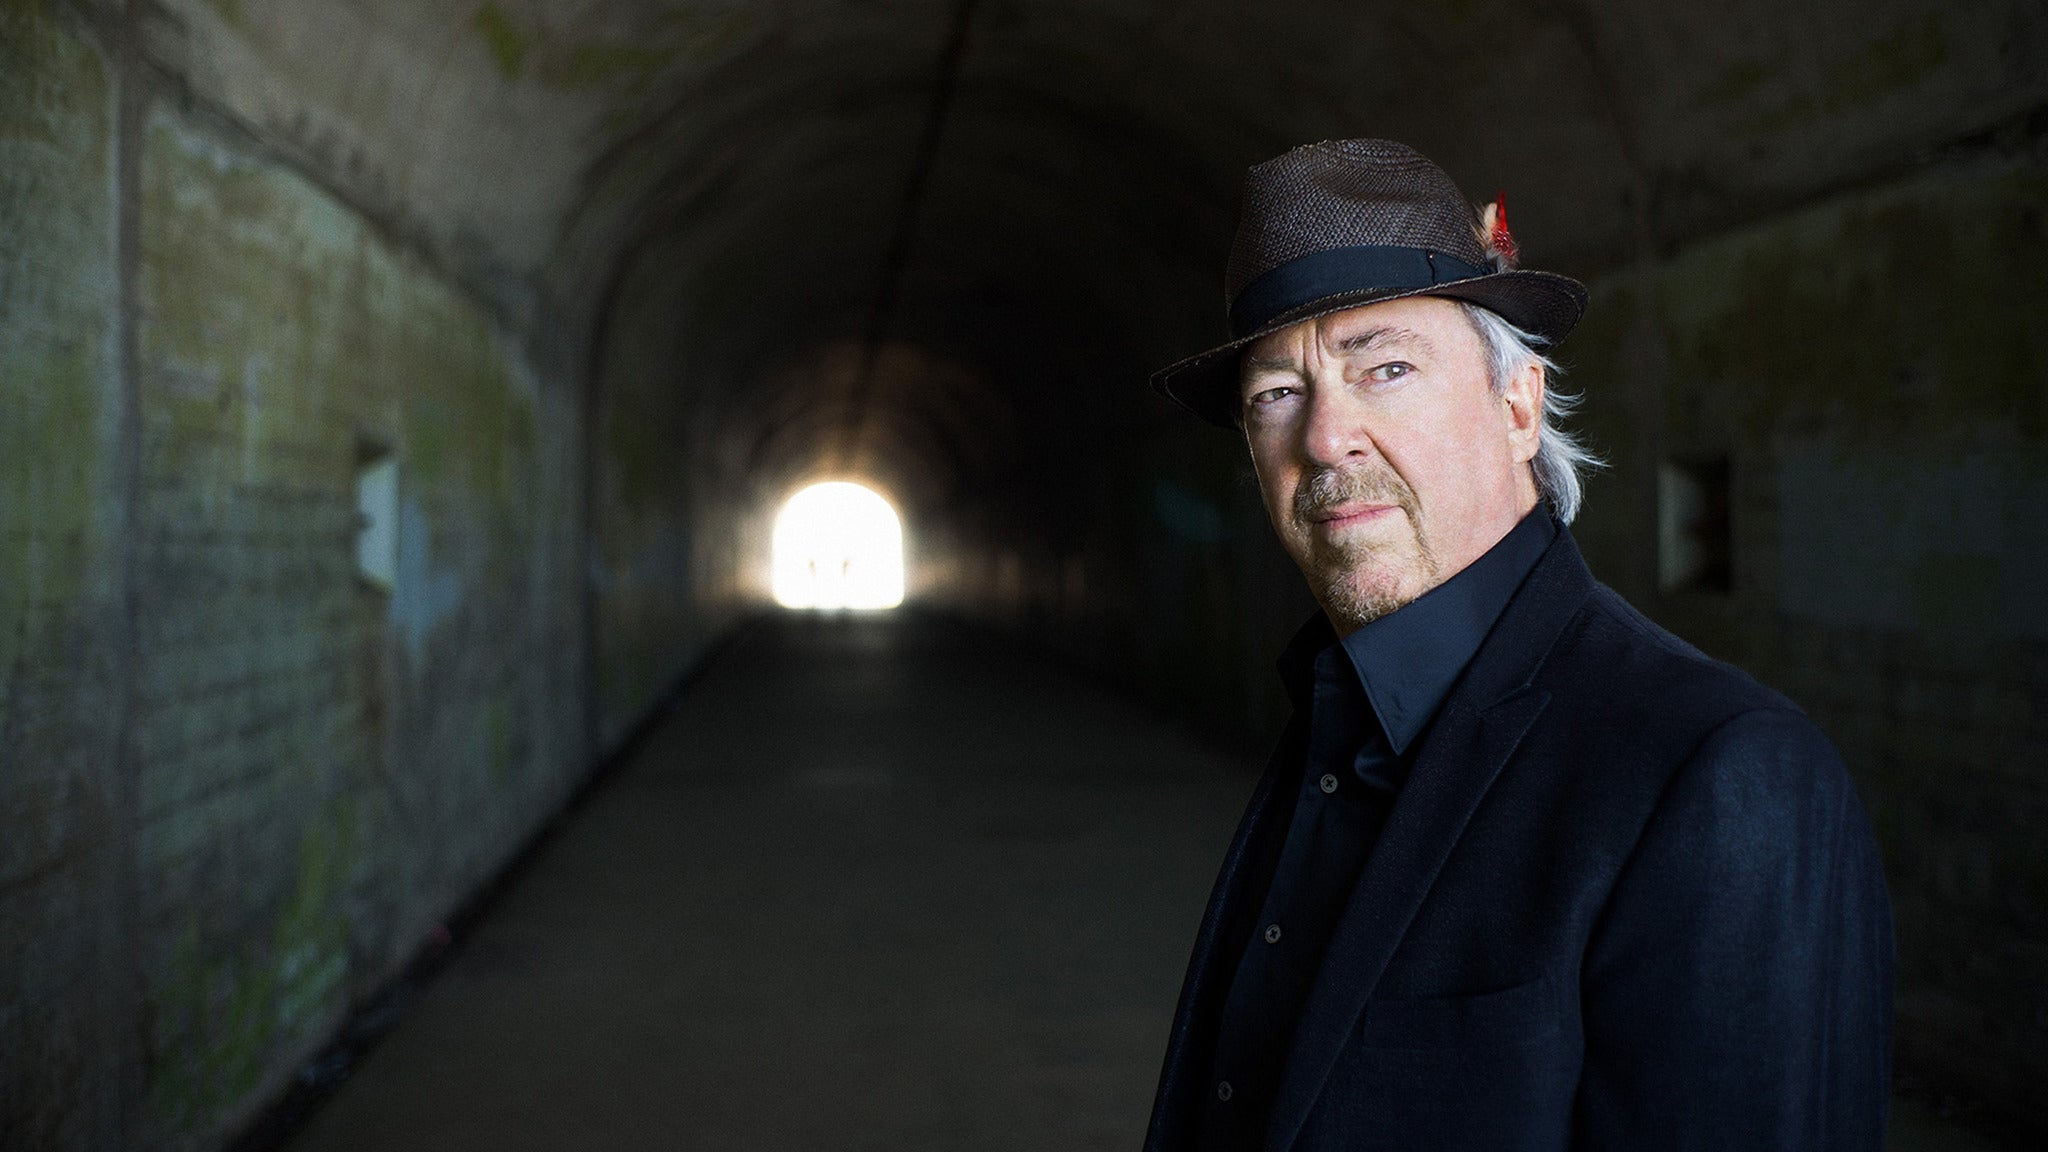 Boz Scaggs at Fox Theatre - Atlanta